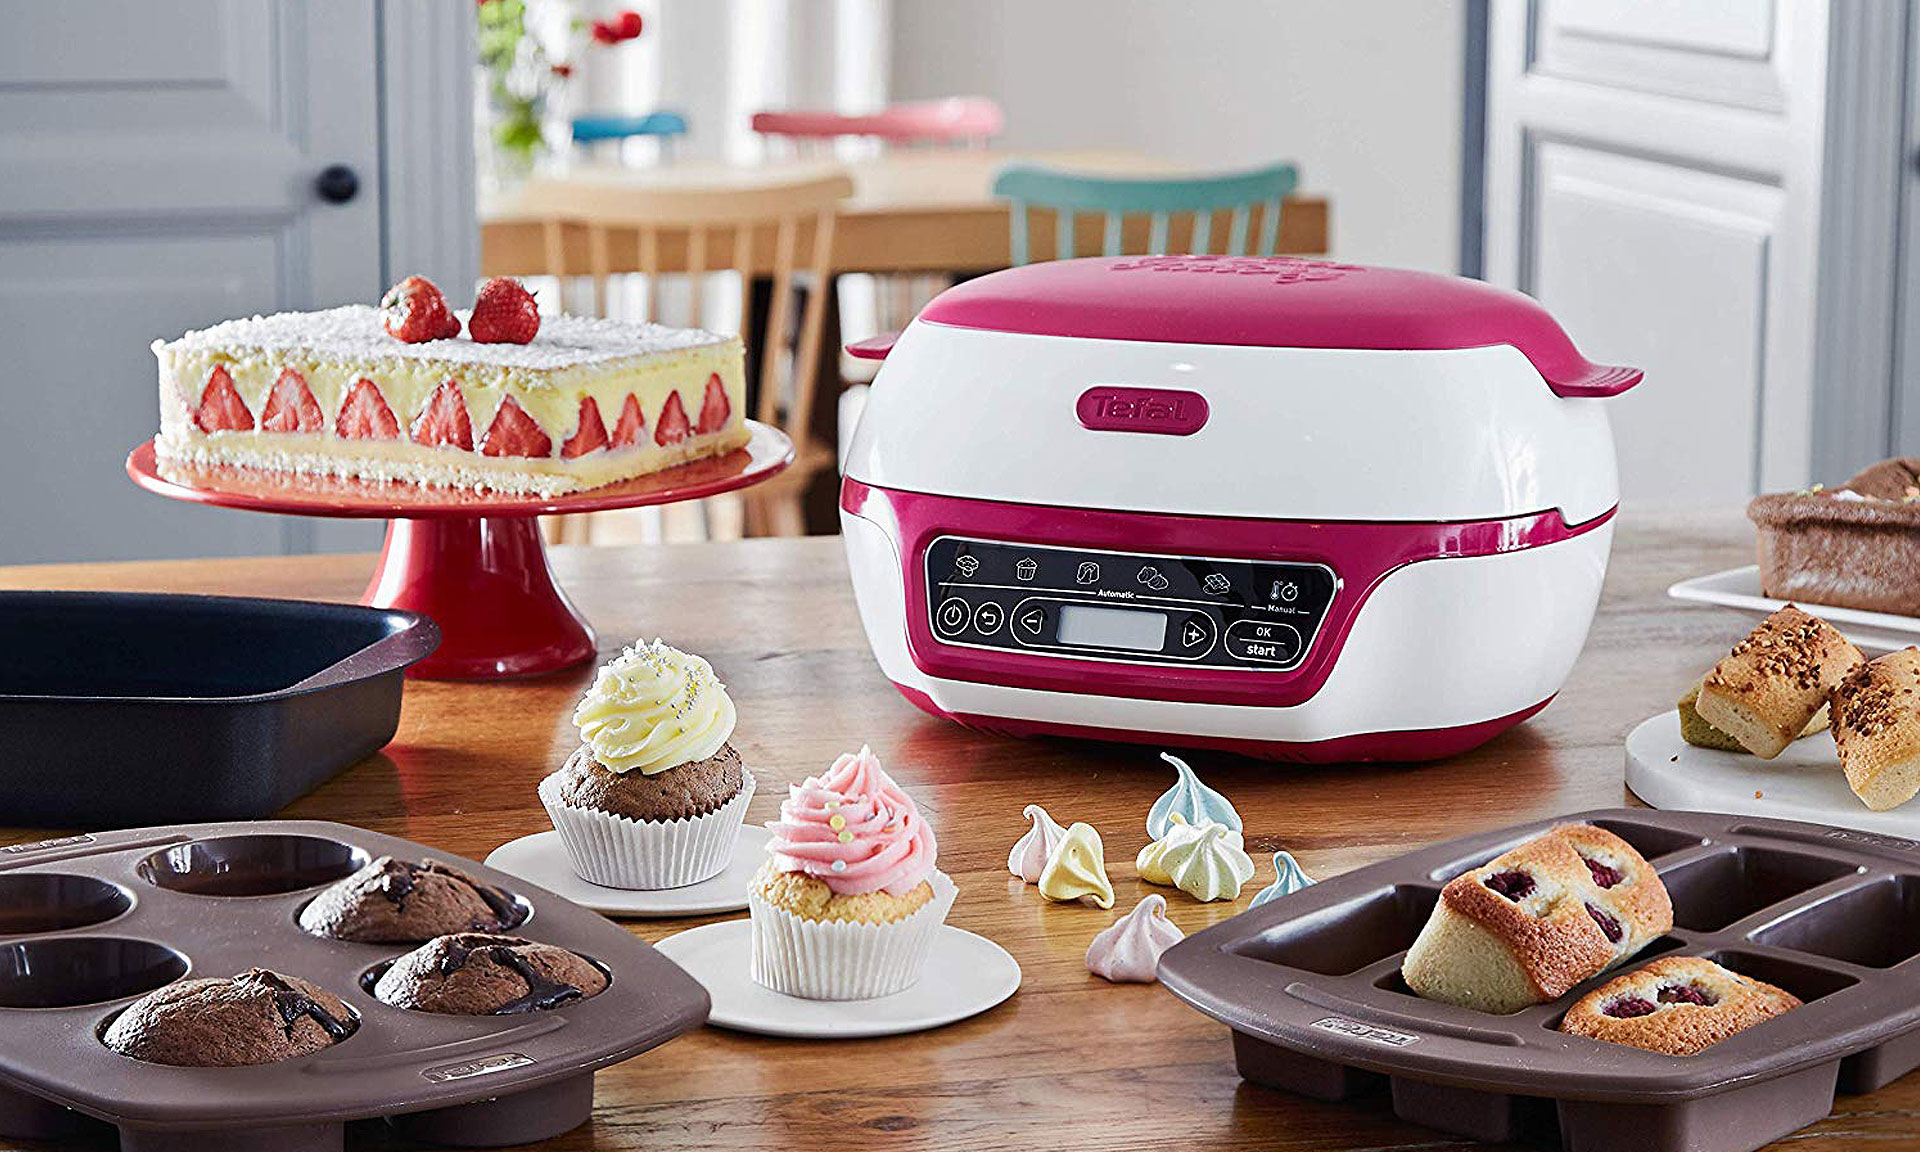 Baking Cakes Tefal Cake Factory Can This Baking Machine Make Perfect Cakes